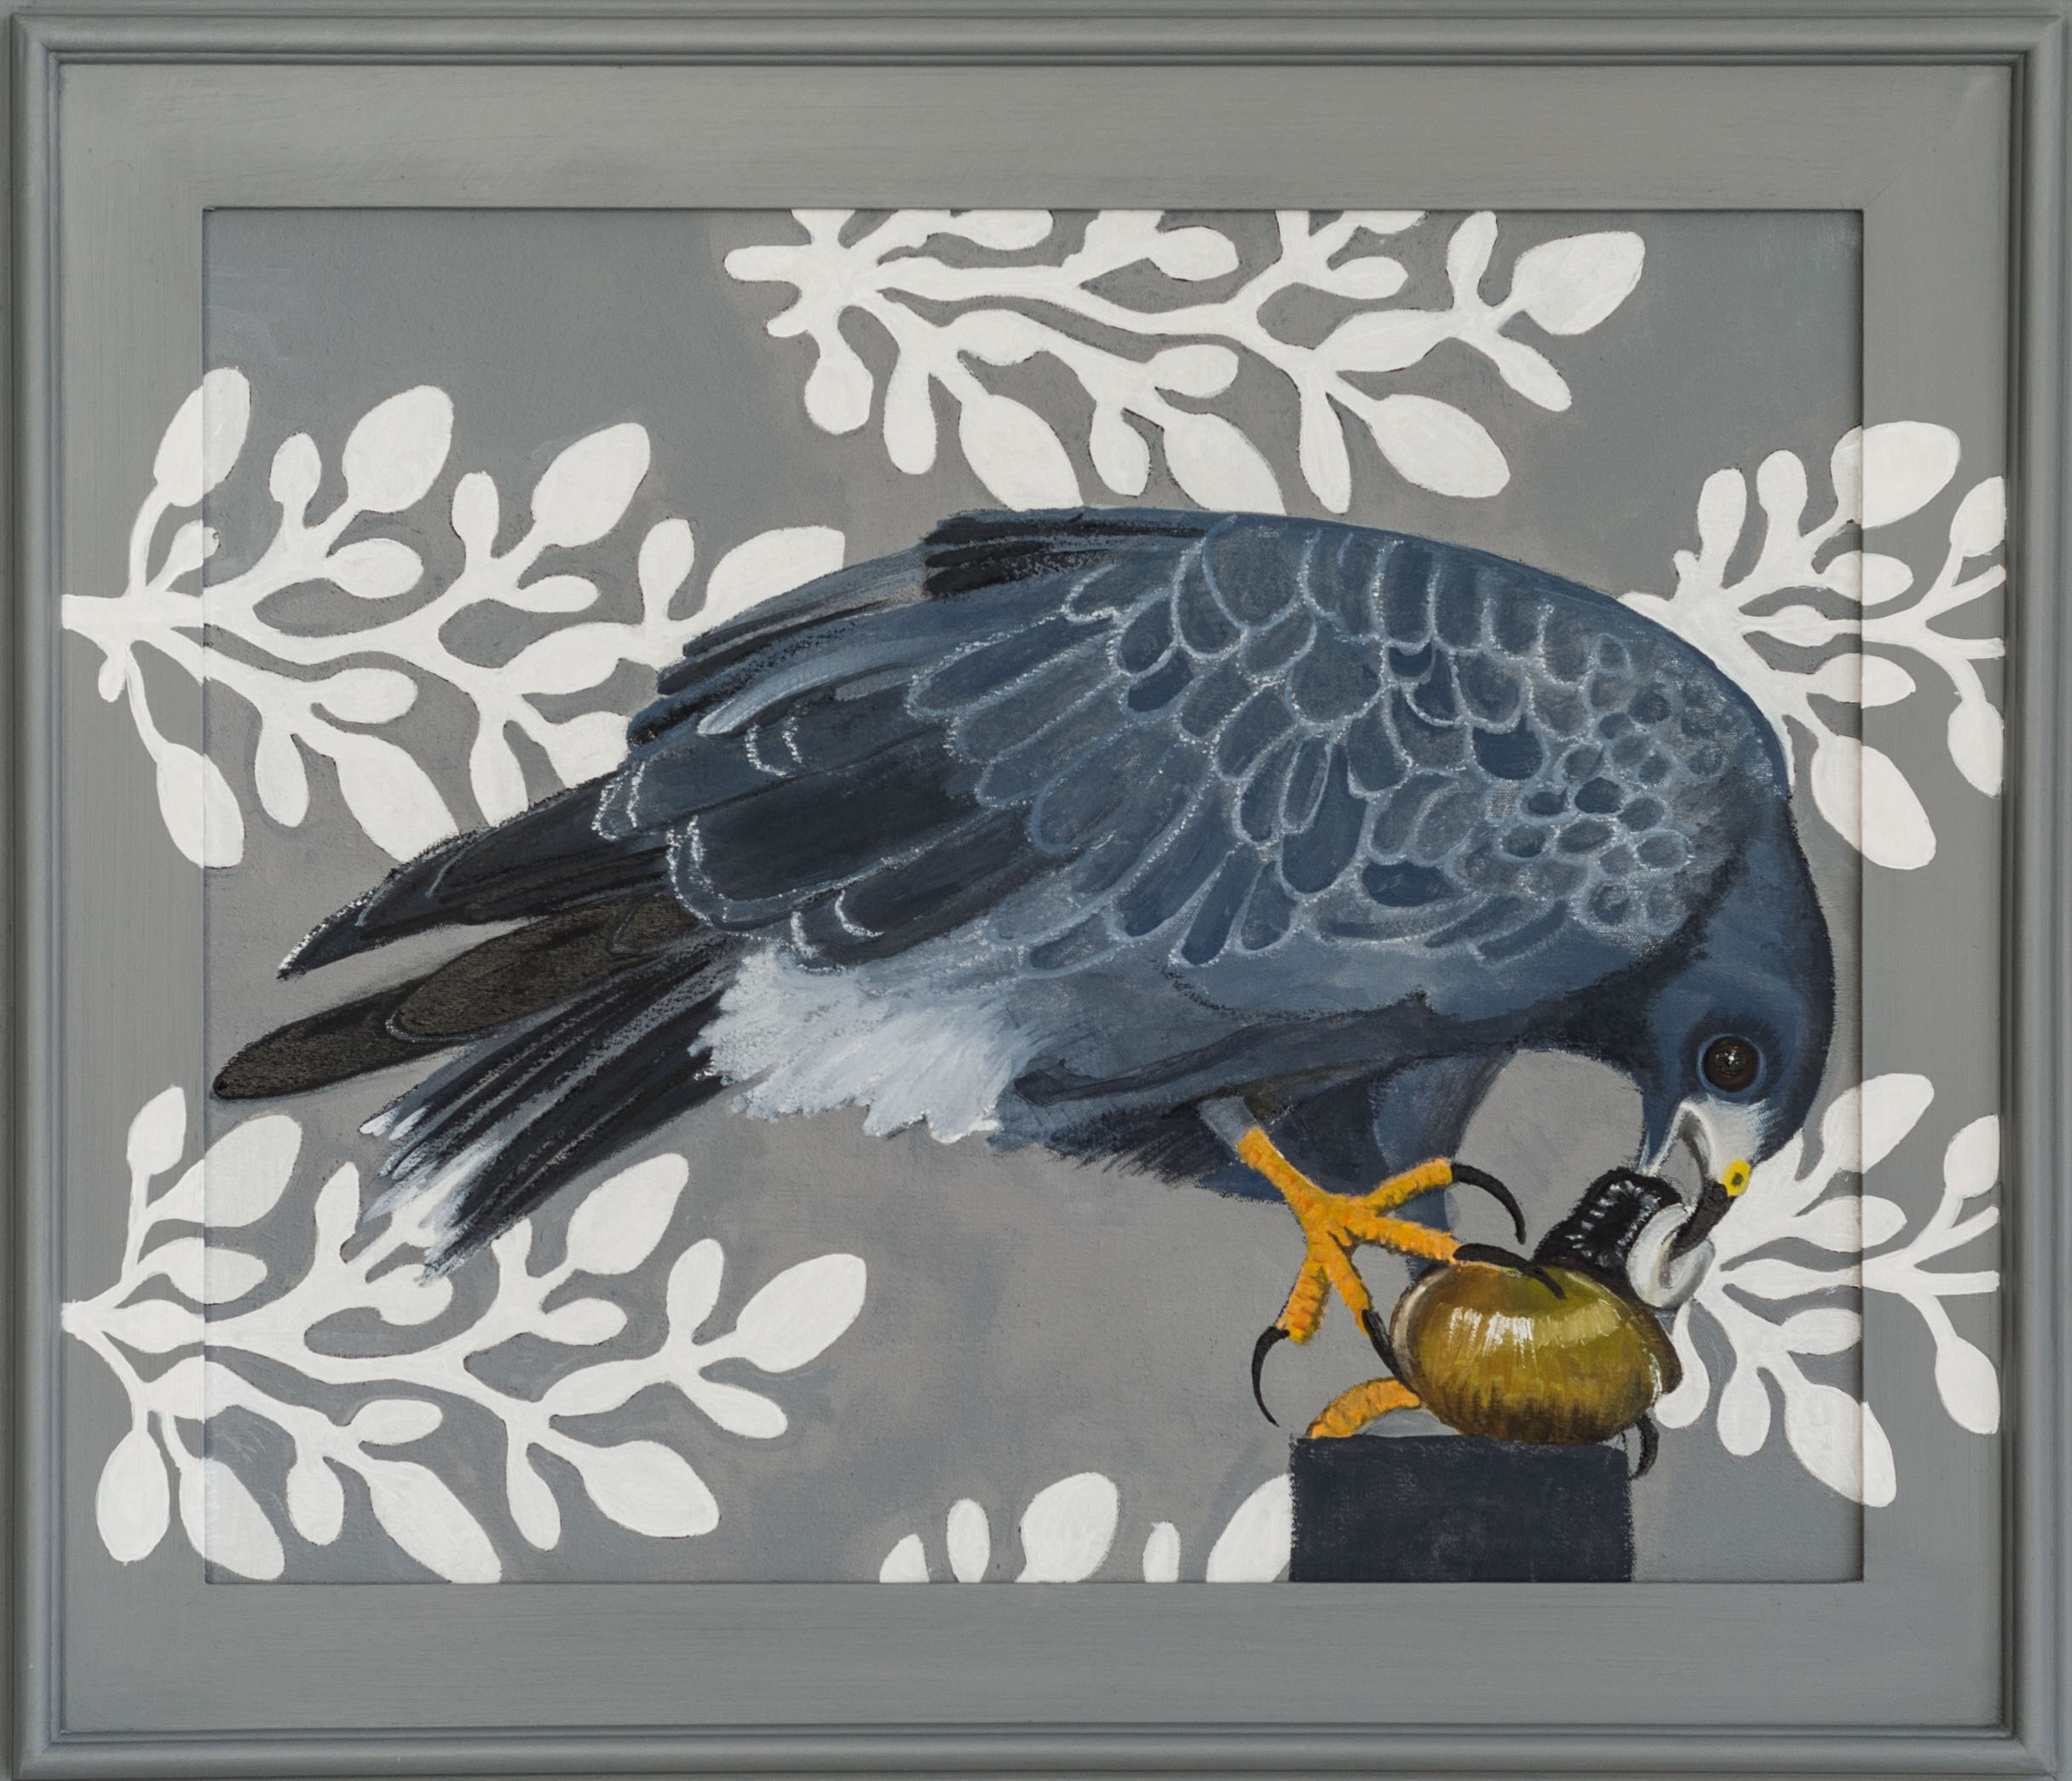 Snail Kite 26x30 (framed) Oil on canvas 2015 web